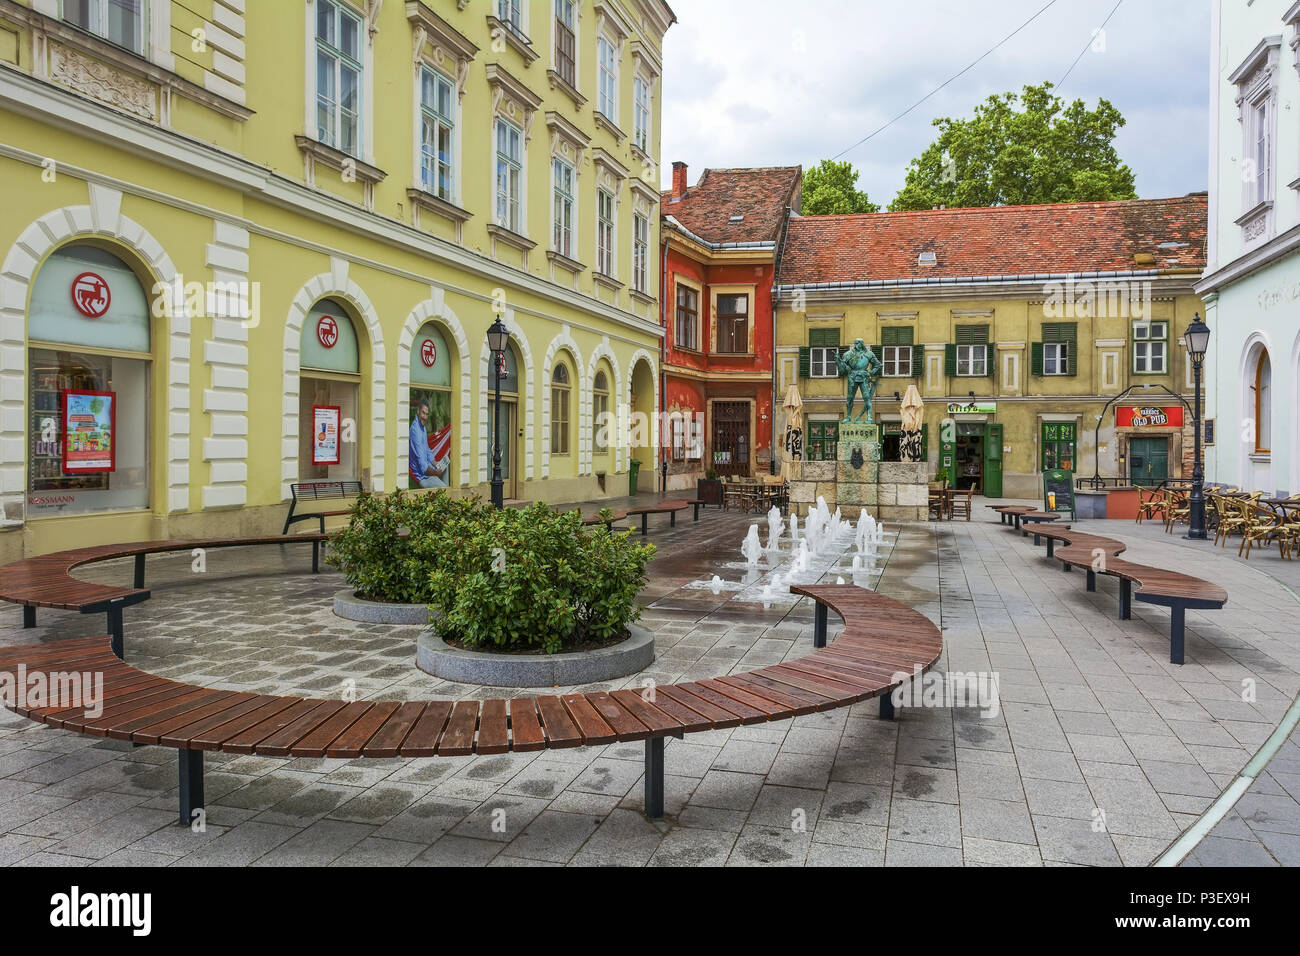 Statue of castle captains Gyorgy Varkocs on in the small square opening from the main street of Székesfehérvár,Hungary. - Stock Image